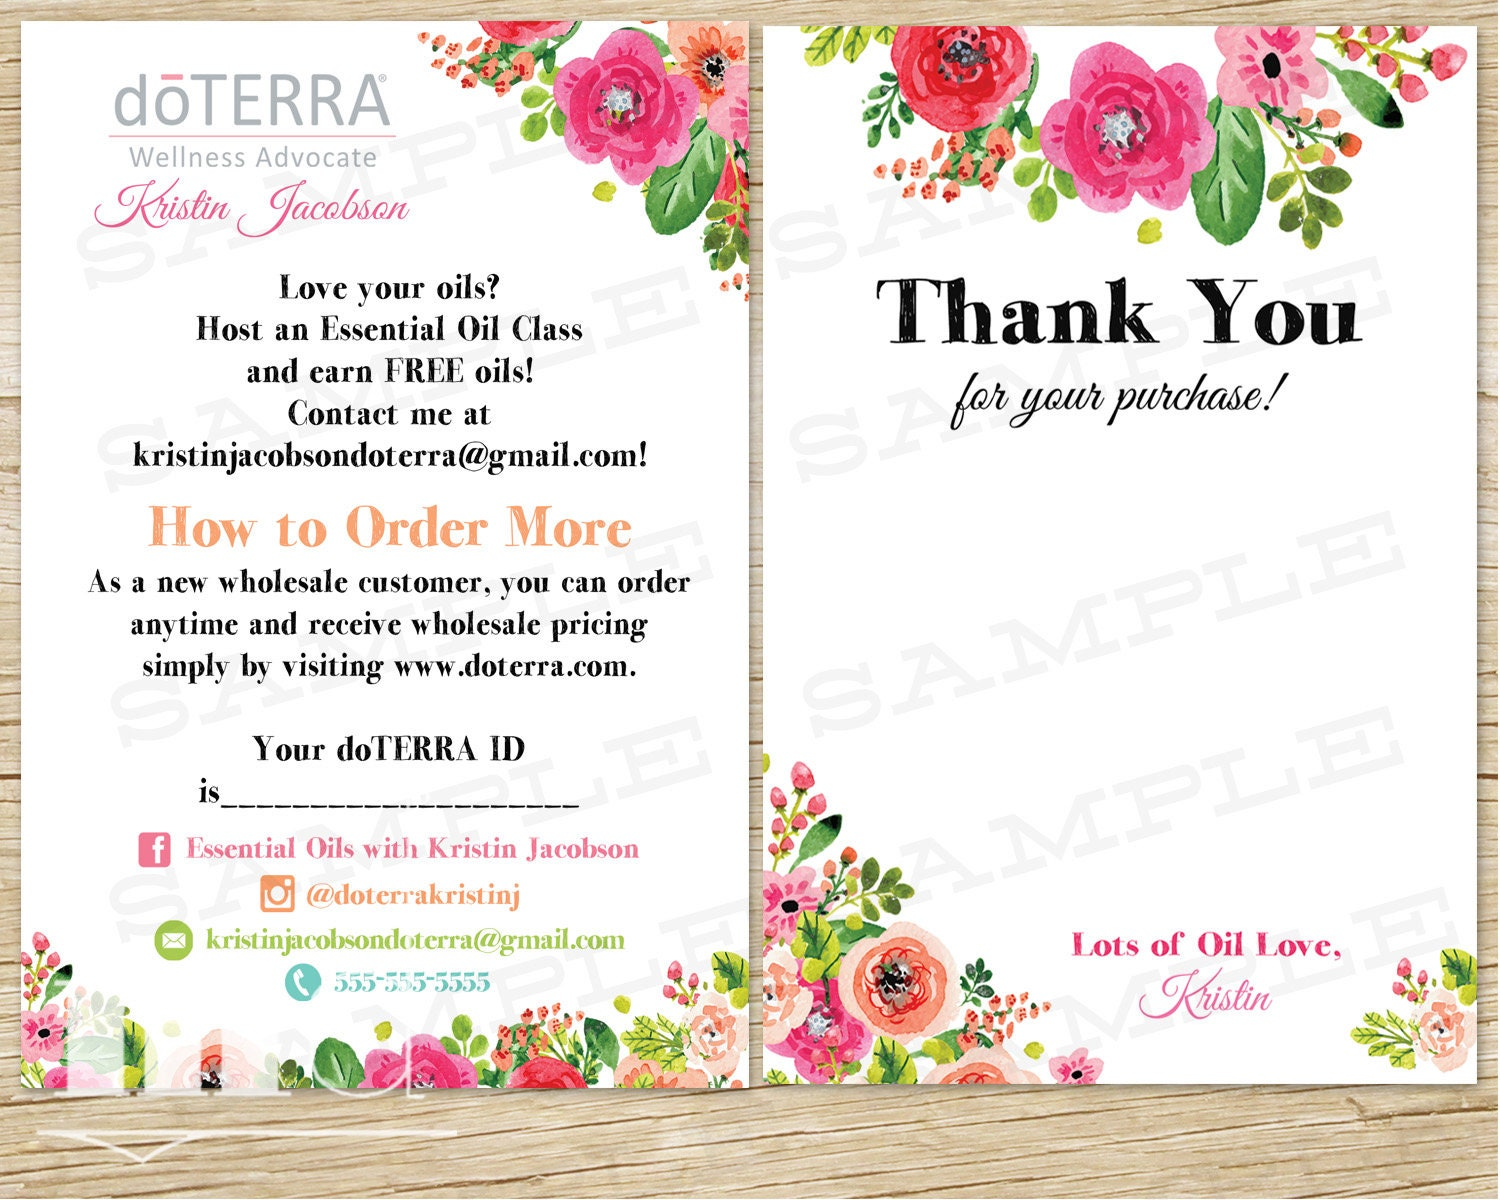 Doterra thank you and info card small business postcard zoom stopboris Images